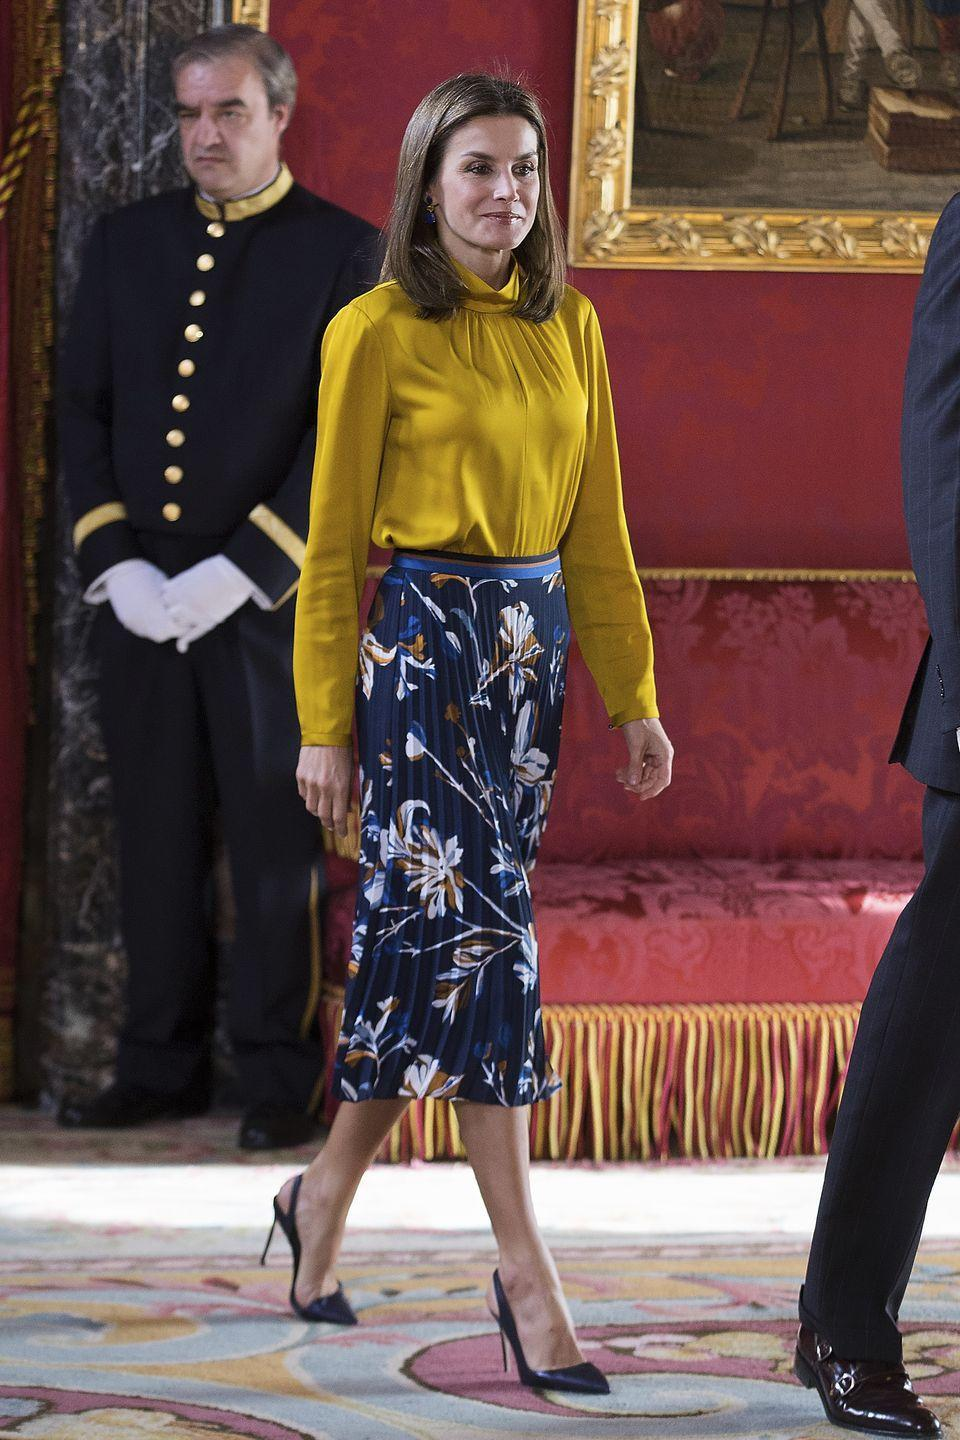 <p>Letizia wore a yellow blouse with a floral-printed skirt while receiving Palestinian President Mahmoud Abbas at the Royal Palace in Madrid. </p>